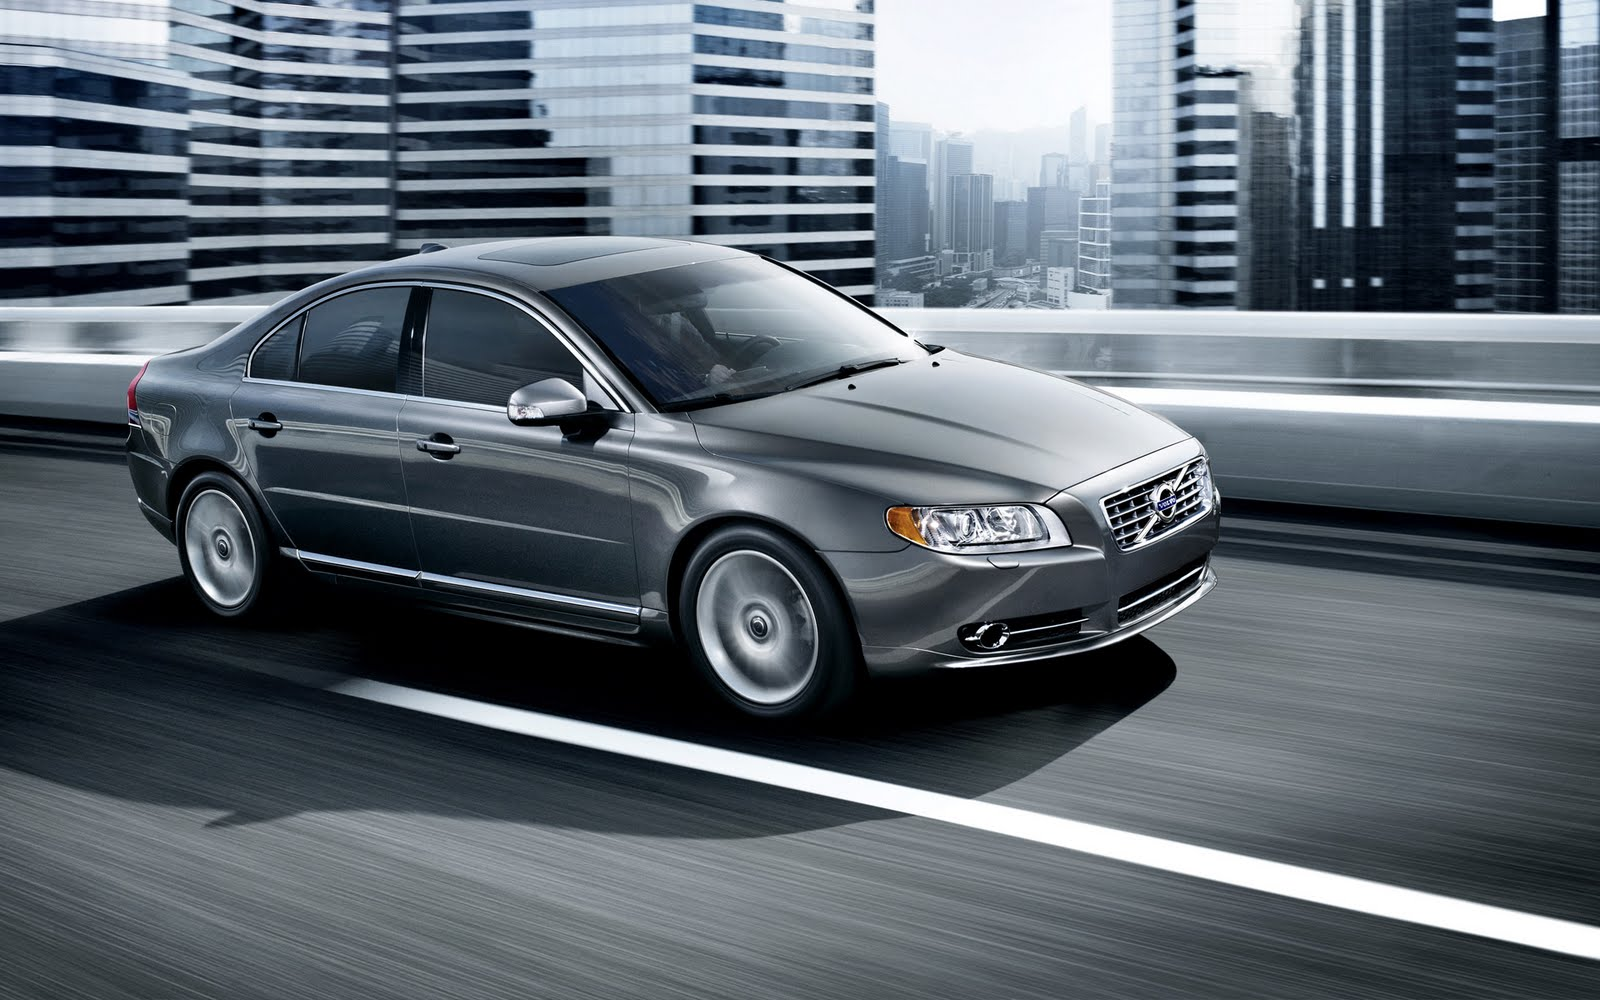 Volvo S60: Putting ACC in standby mode